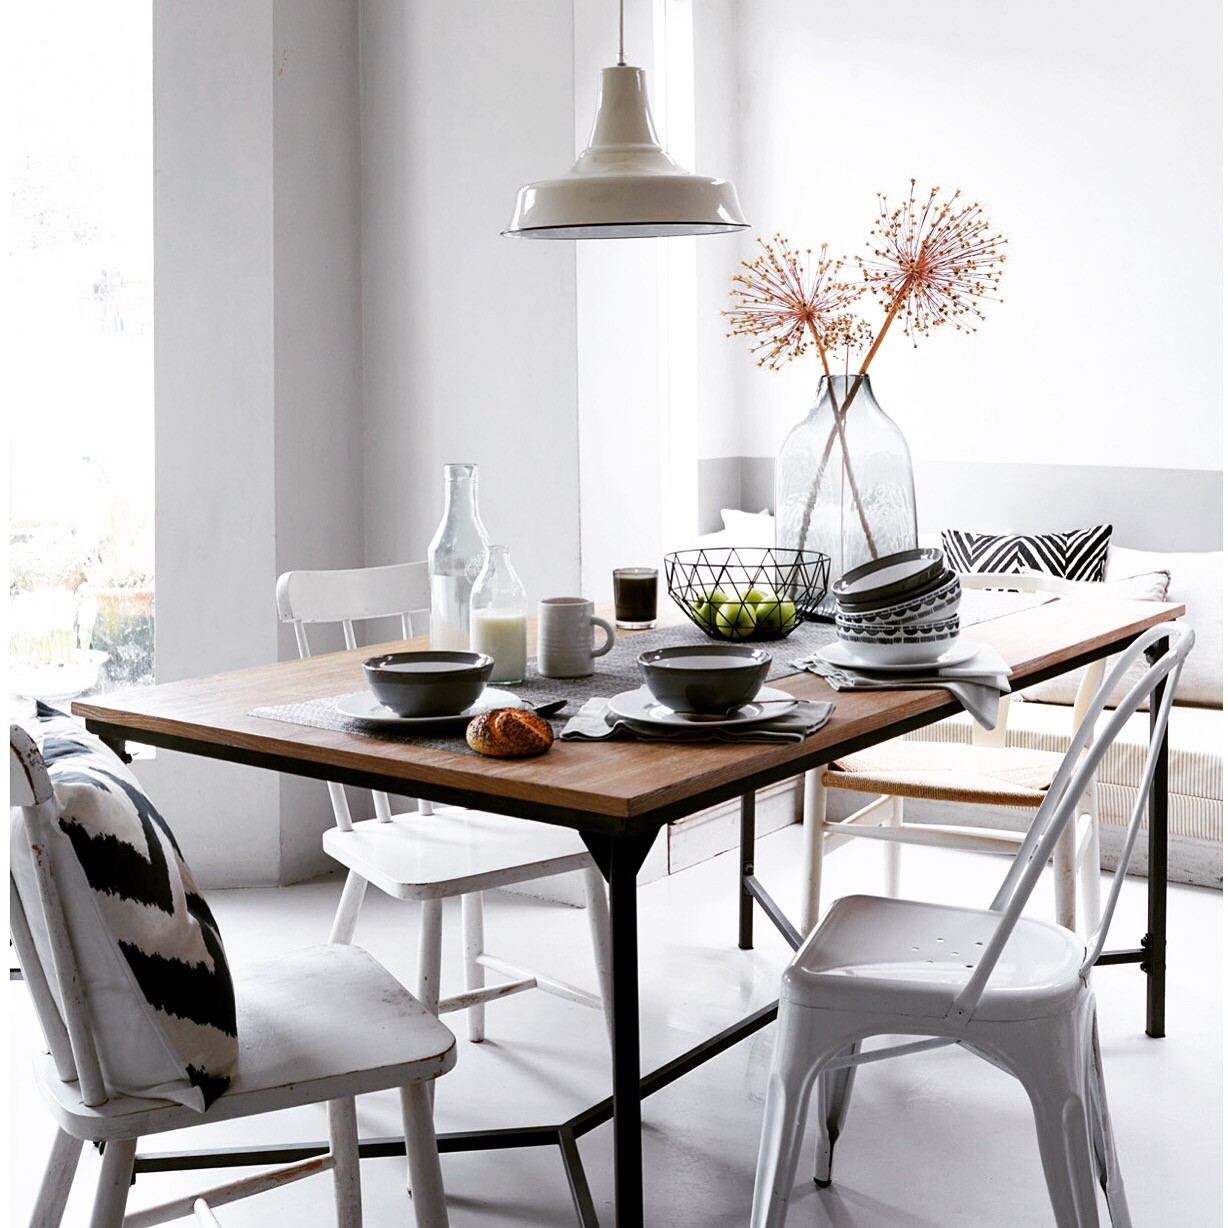 tesco living, brent darby, pippa jameson interiors, homestyle magazine, grey walls, fining rooms, reclaimed table, ikat patterns, ikat china, Layer up your Monochrome and Ikat chinaware for a calm and contemporary dining room